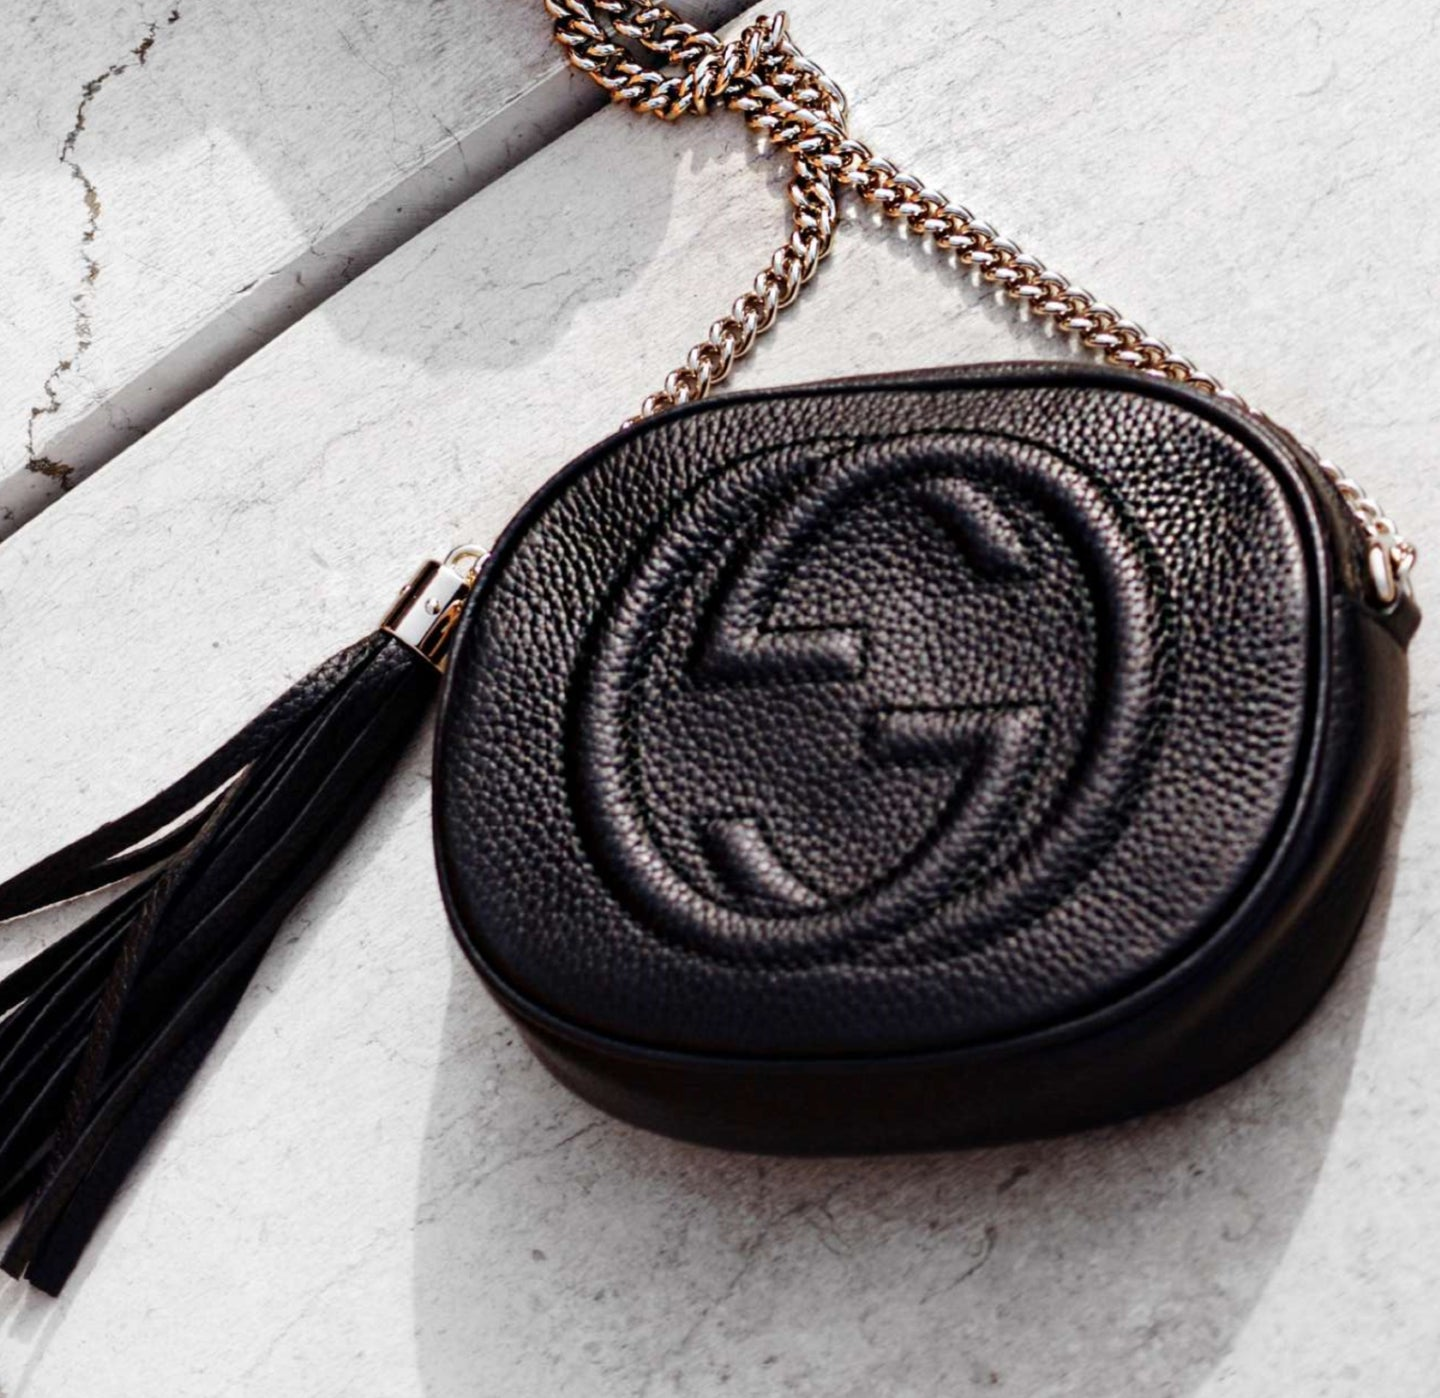 Gucci soho leather mini chain bag